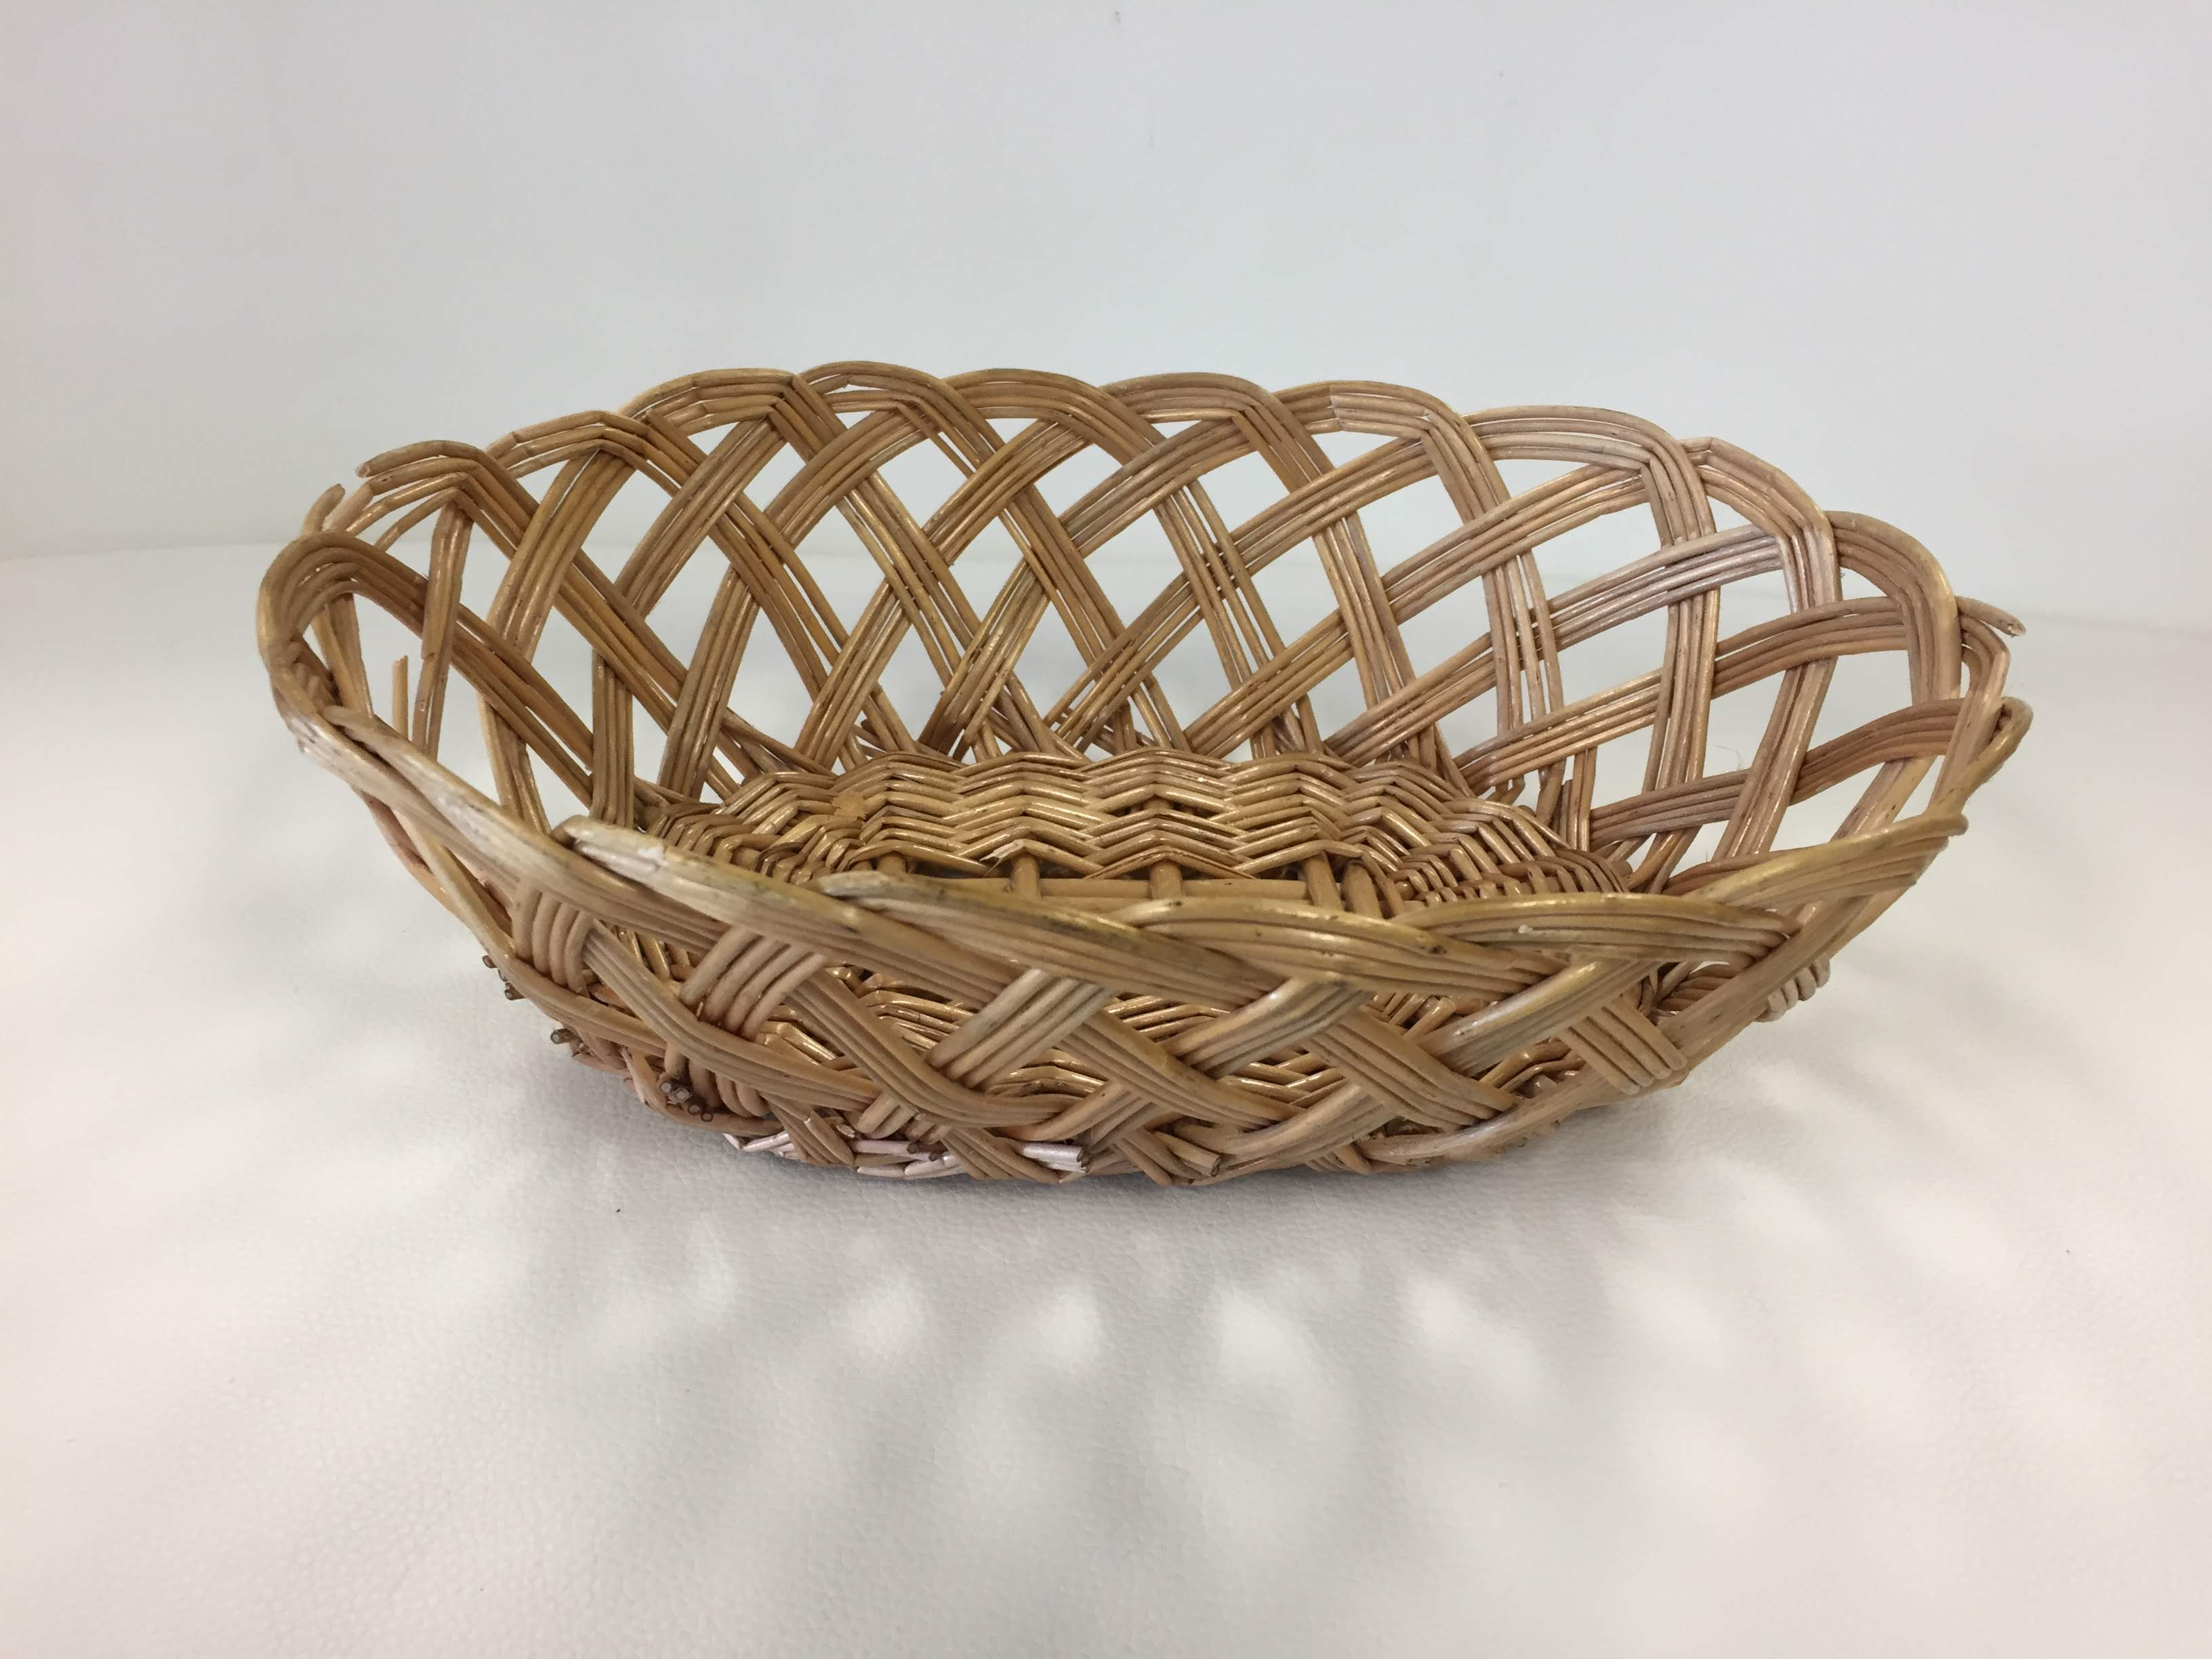 Wicker Bread/Roll Basket Rental